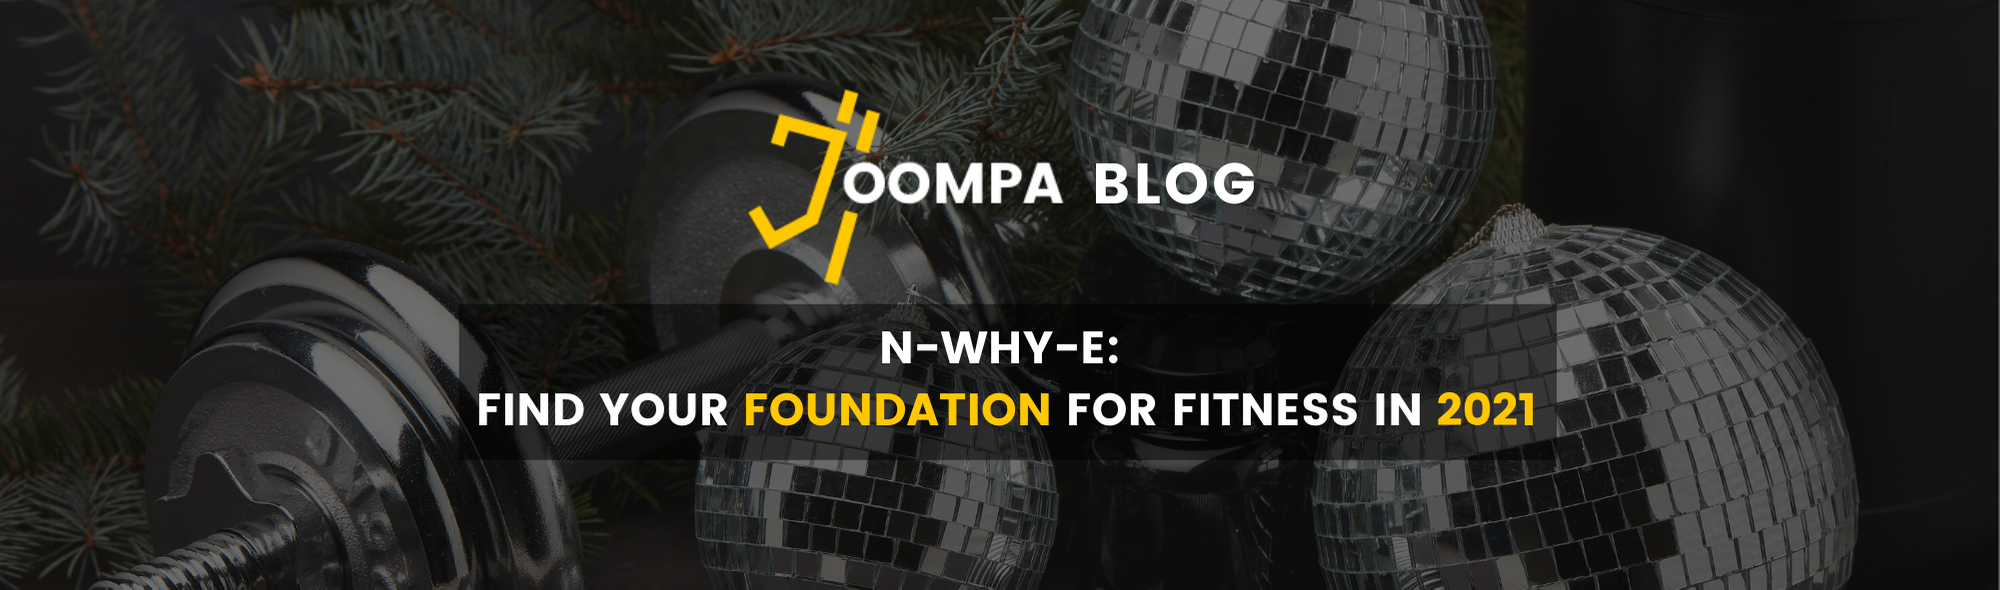 N-WHY-E: Find your foundation for fitness in 2021